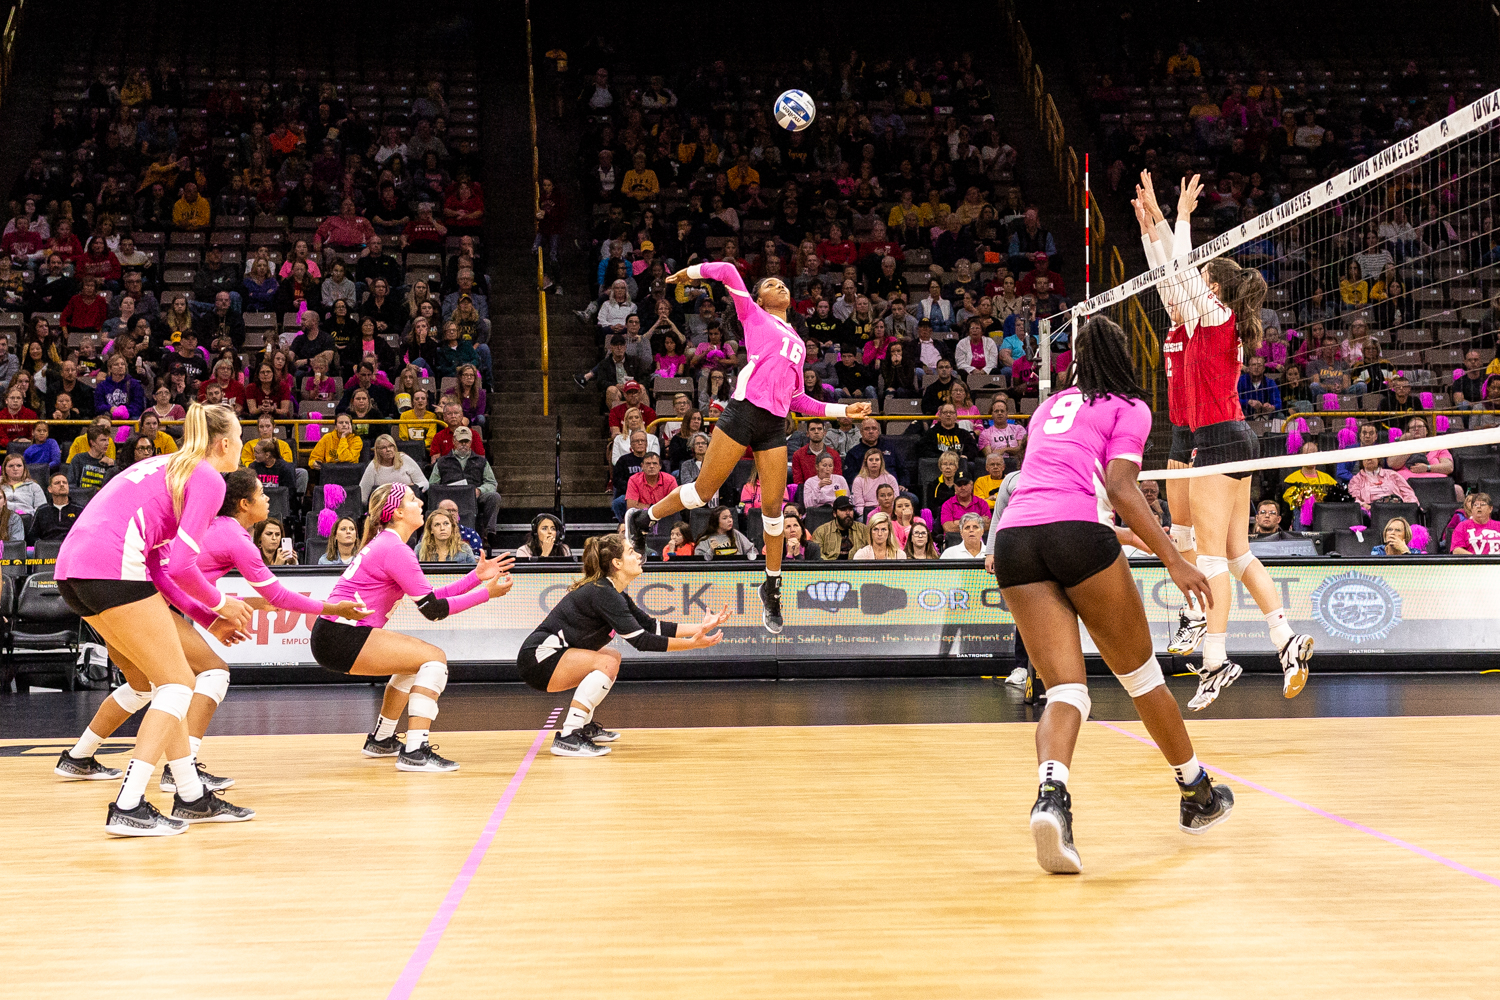 Iowa's Taylor Louis winds up to spike the ball during a volleyball match against Wisconsin on Saturday, Oct. 6, 2018. The Hawkeyes defeated the number six ranked Badgers 3-2.